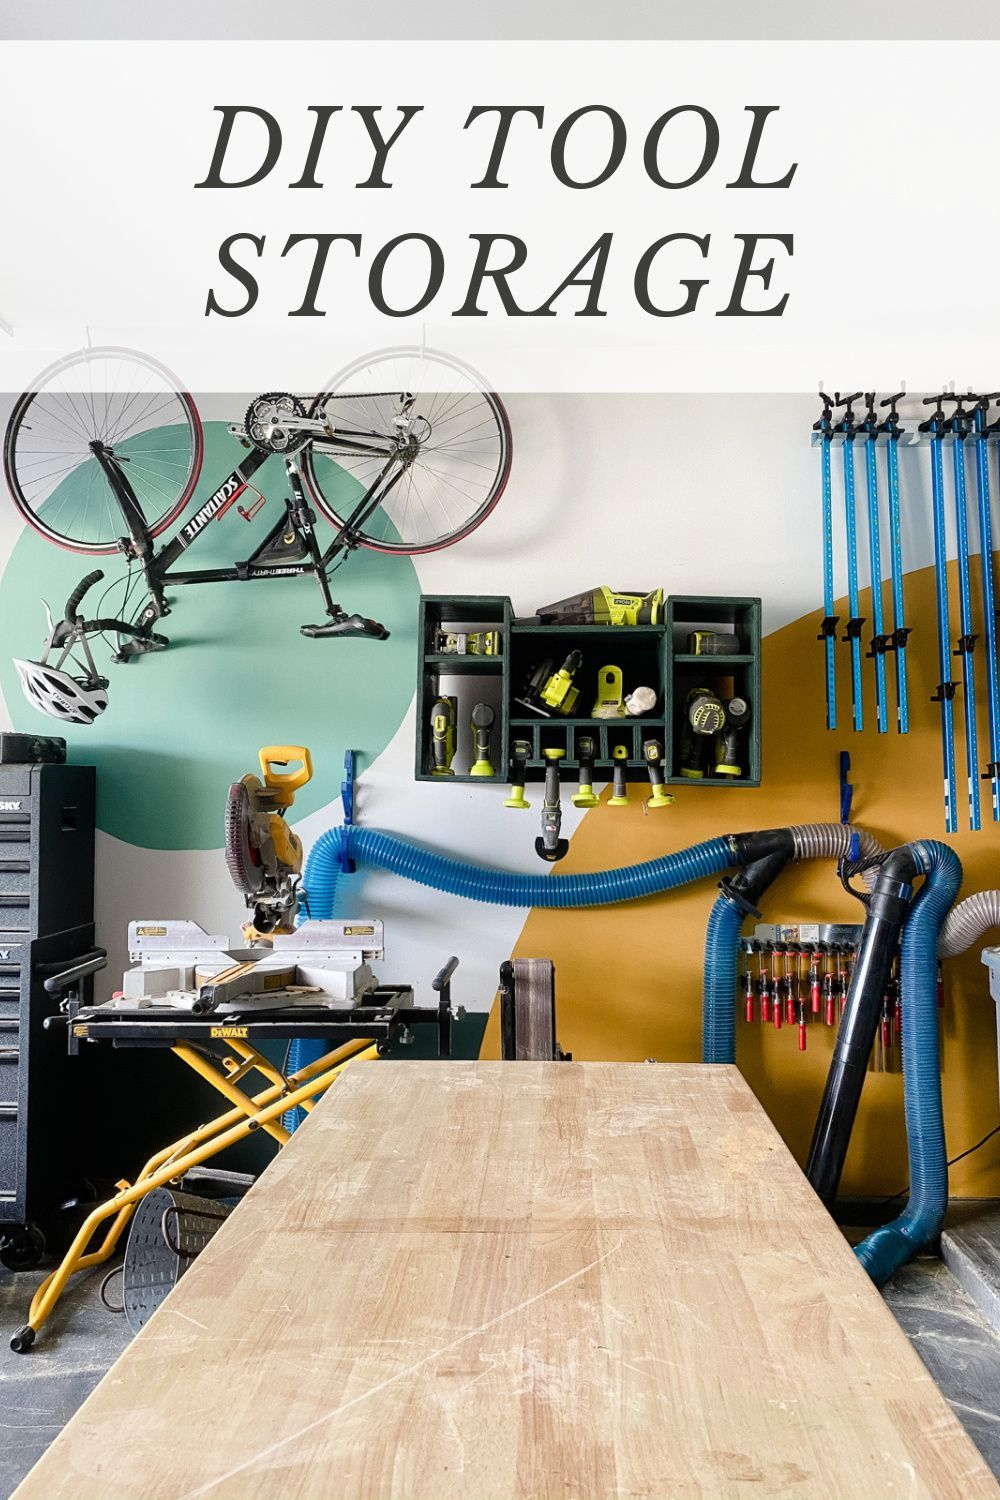 Diy Tool Storage And Organization In 2020 Tool Storage Diy Tool Storage Tool Storage Cabinets